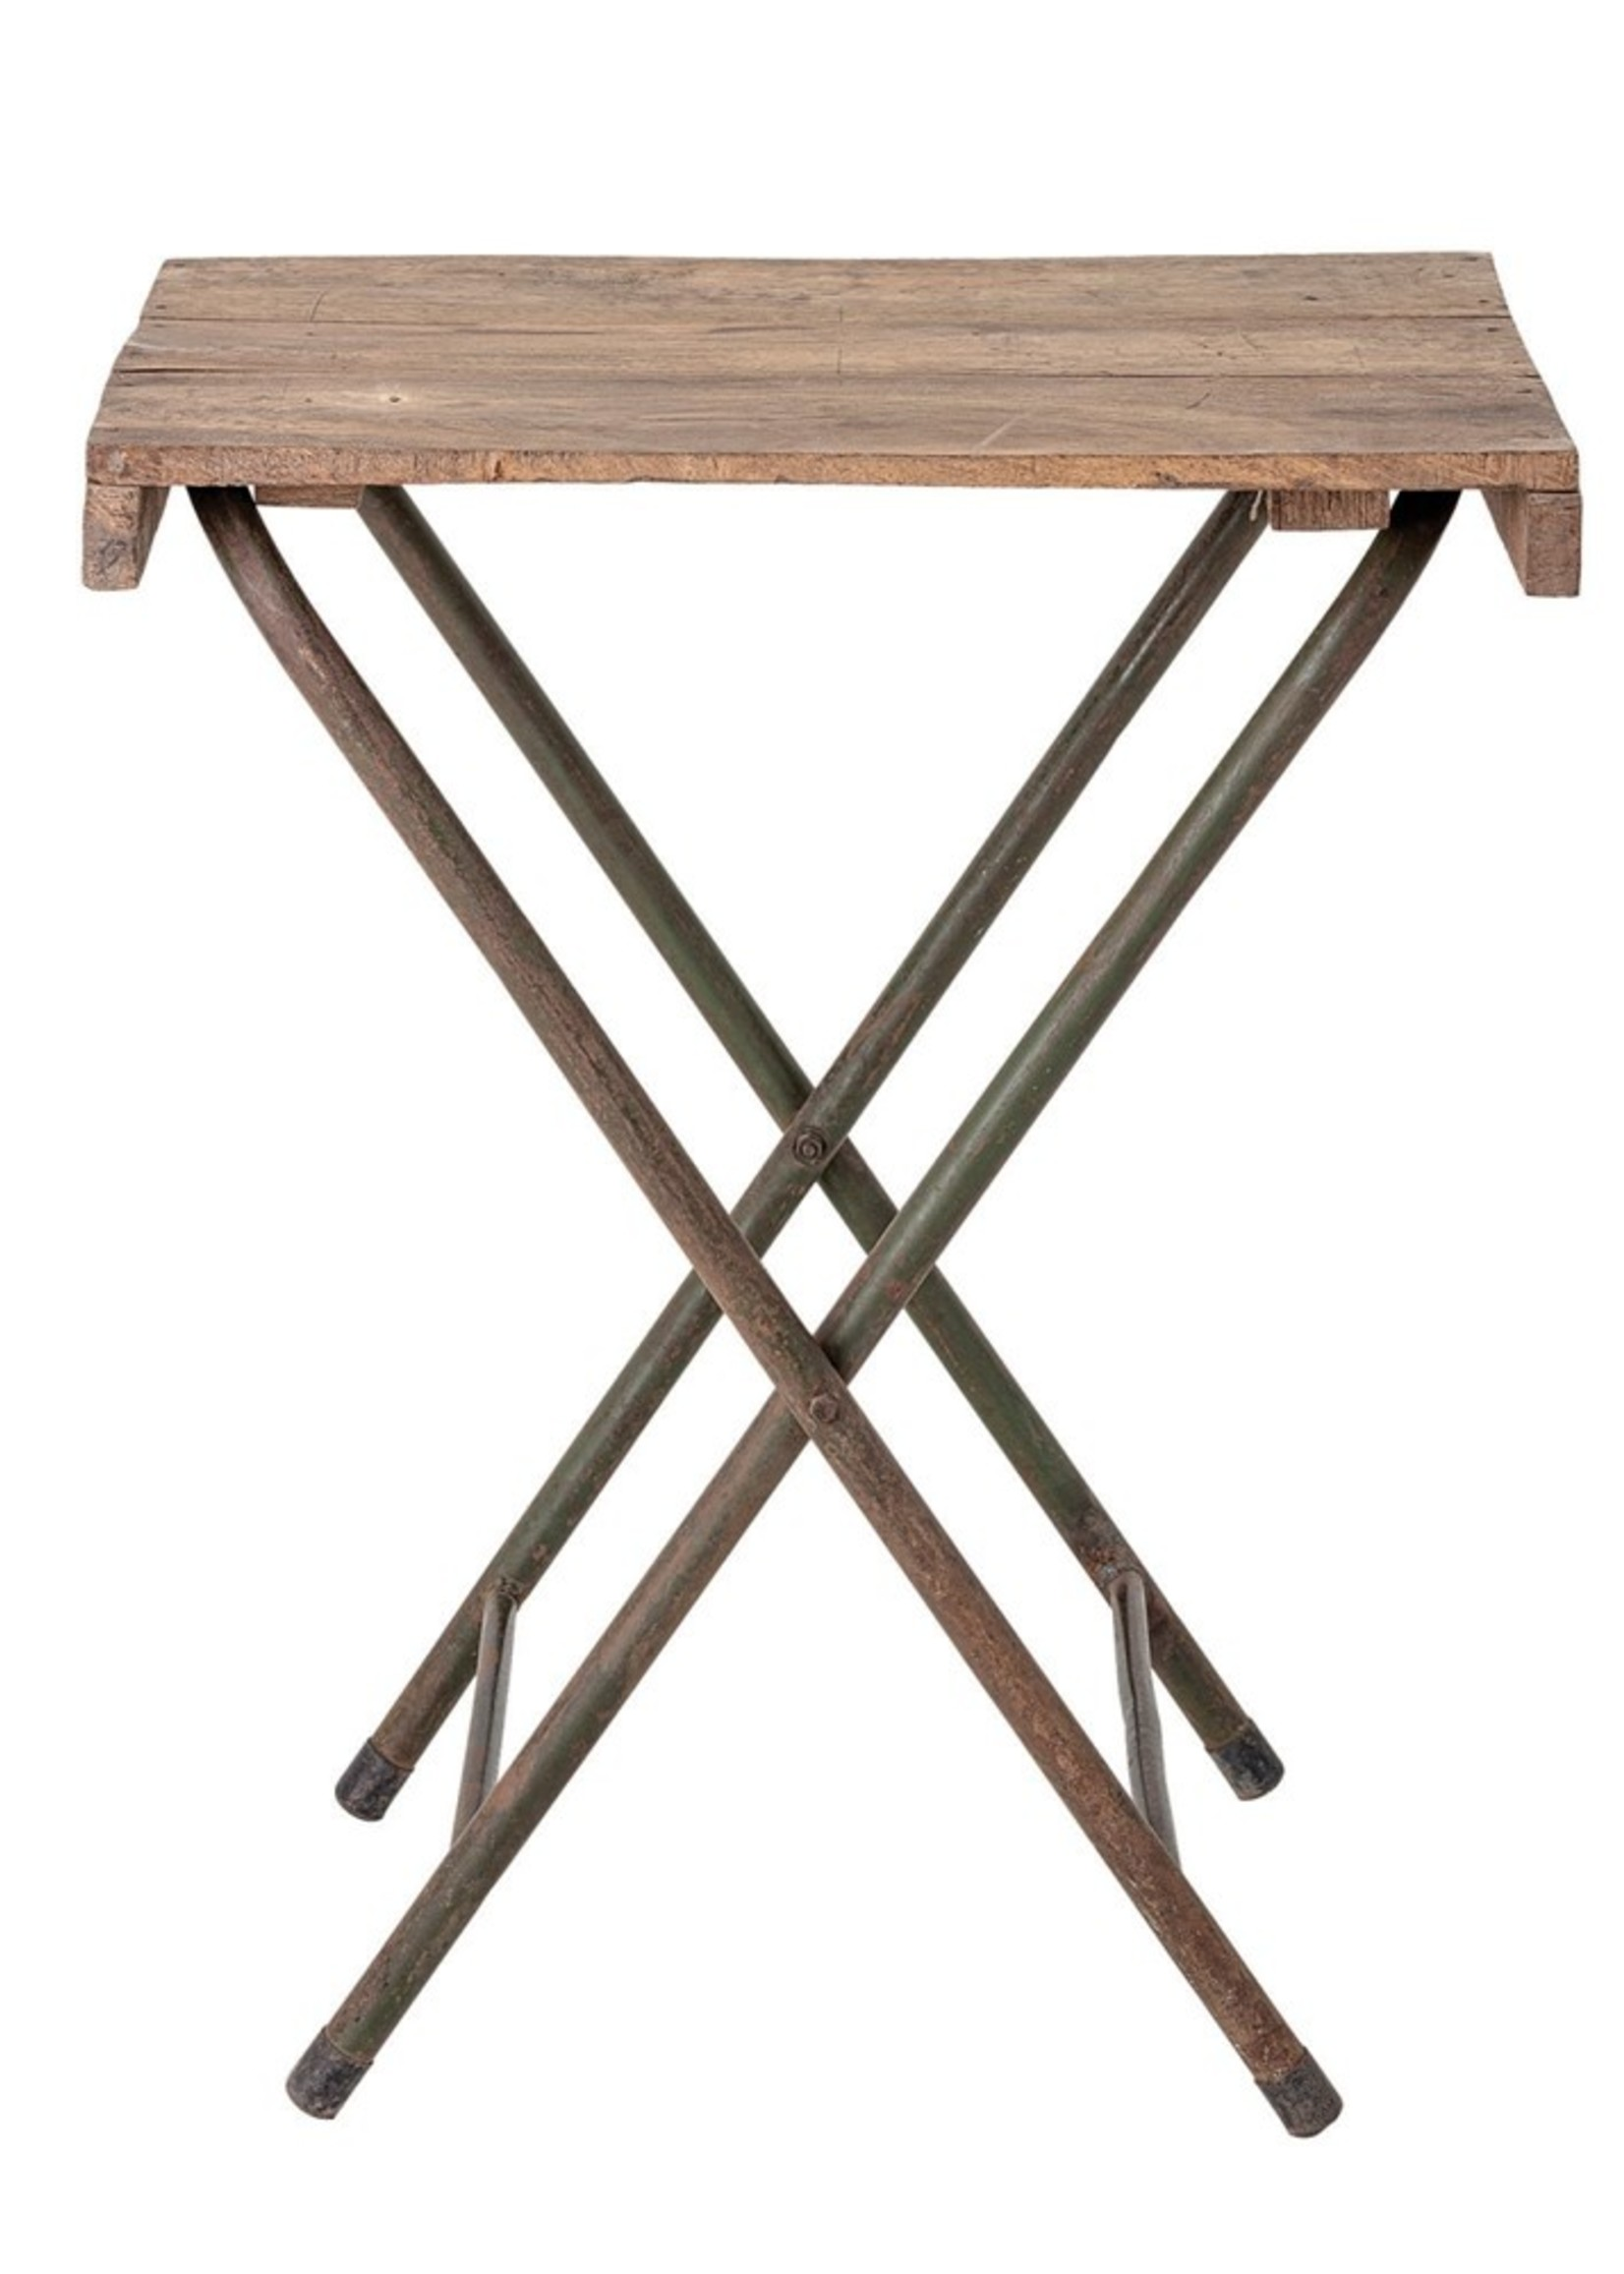 Found Wood Folding Table with Metal Legs, KD (Each One Will Vary)